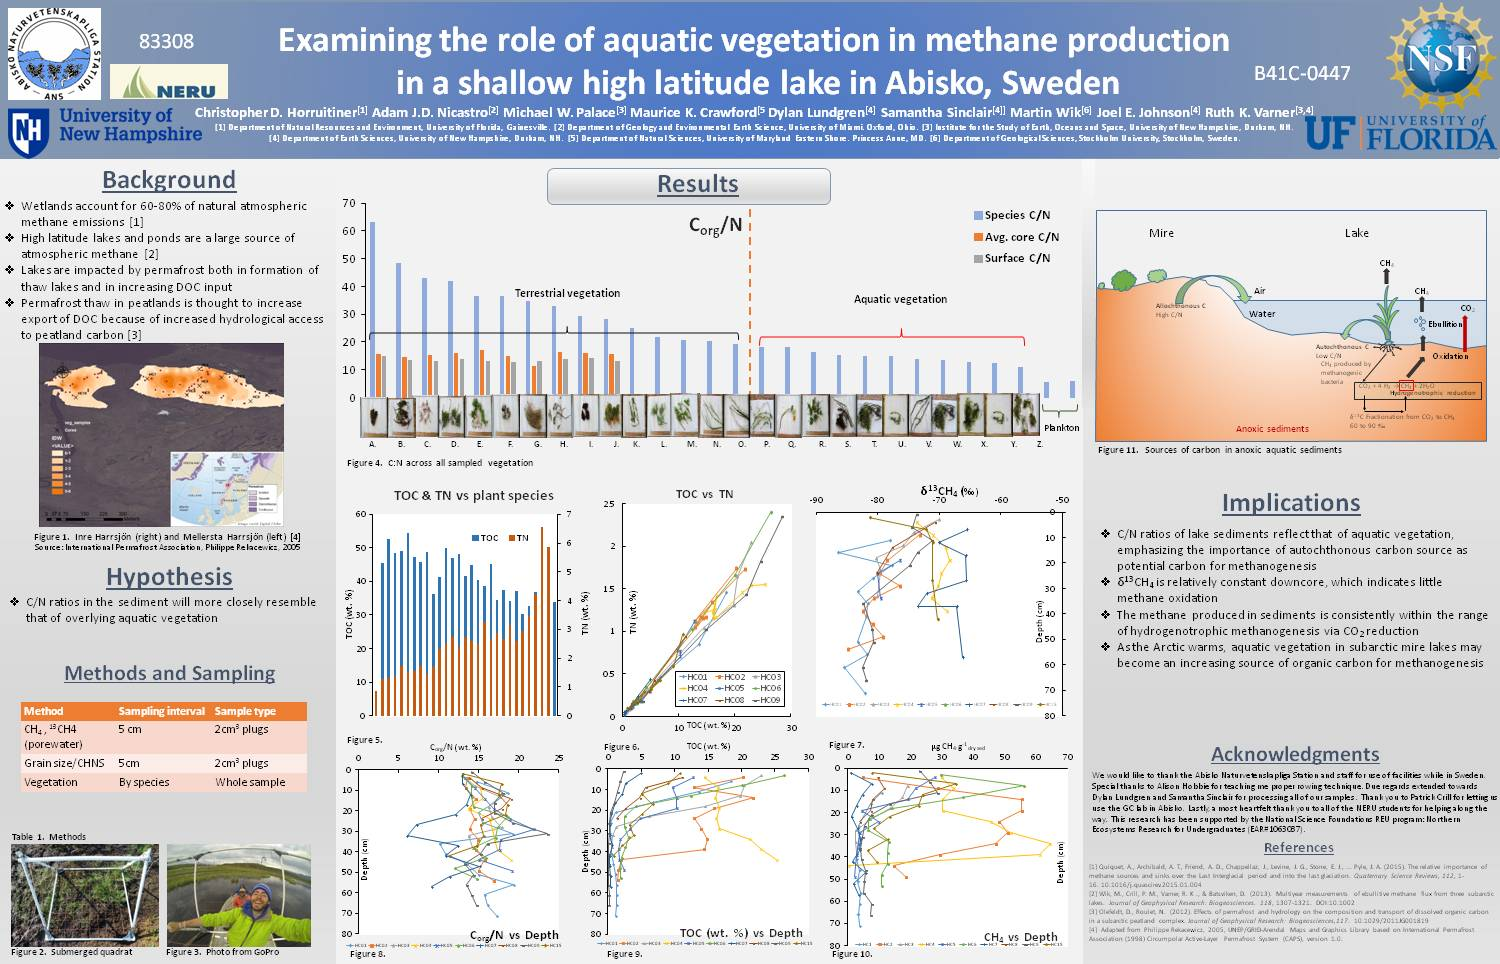 Examining The Role Of Aquatic Vegetation In Methane Production  In A Shallow High Latitude Lake In Abisko, Sweden by rakerwin